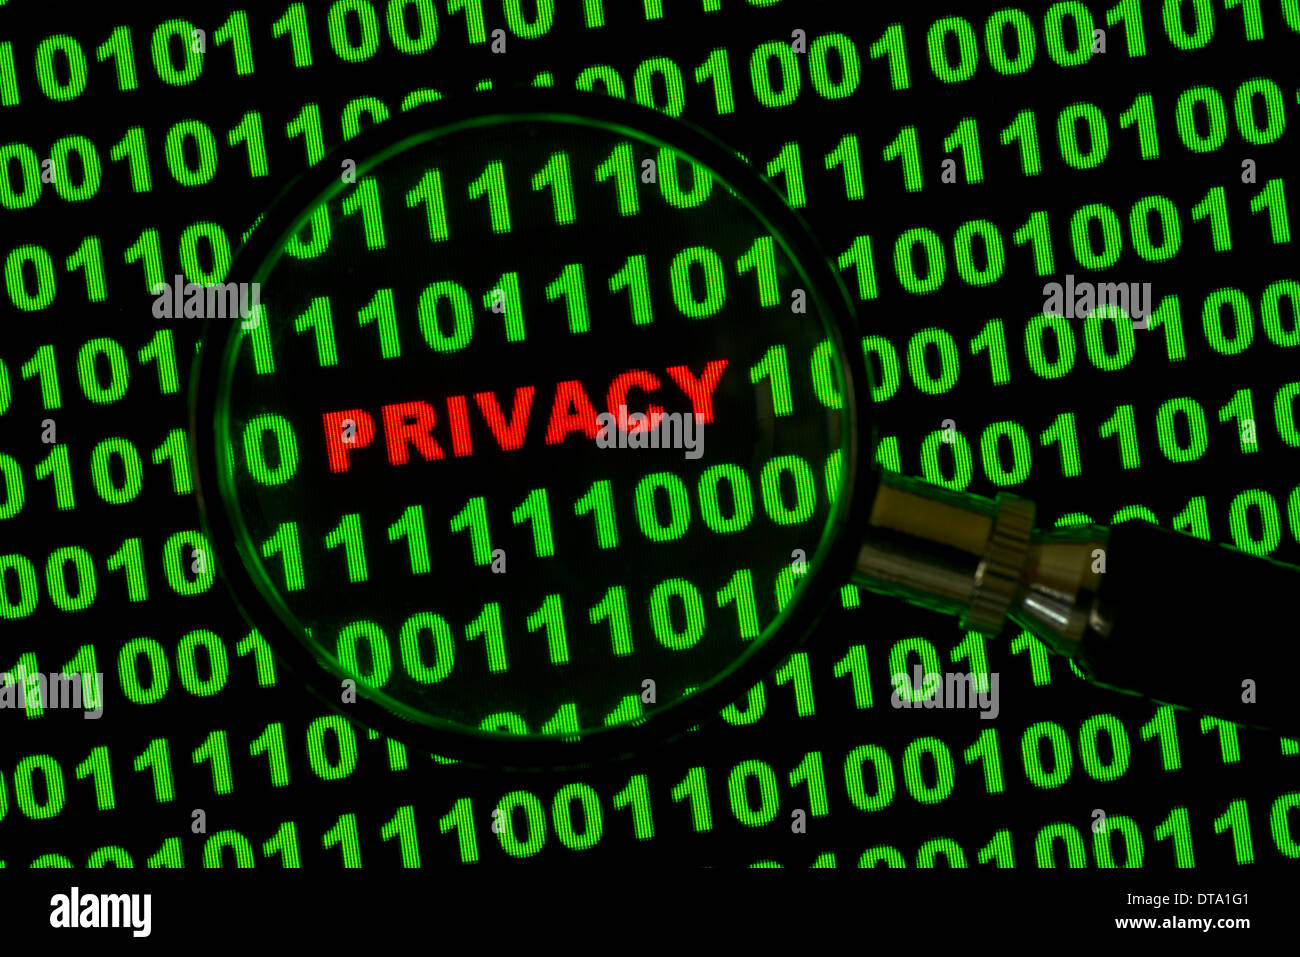 Binary code with the word 'Privacy' viewed through a magnifying glass - Stock Image